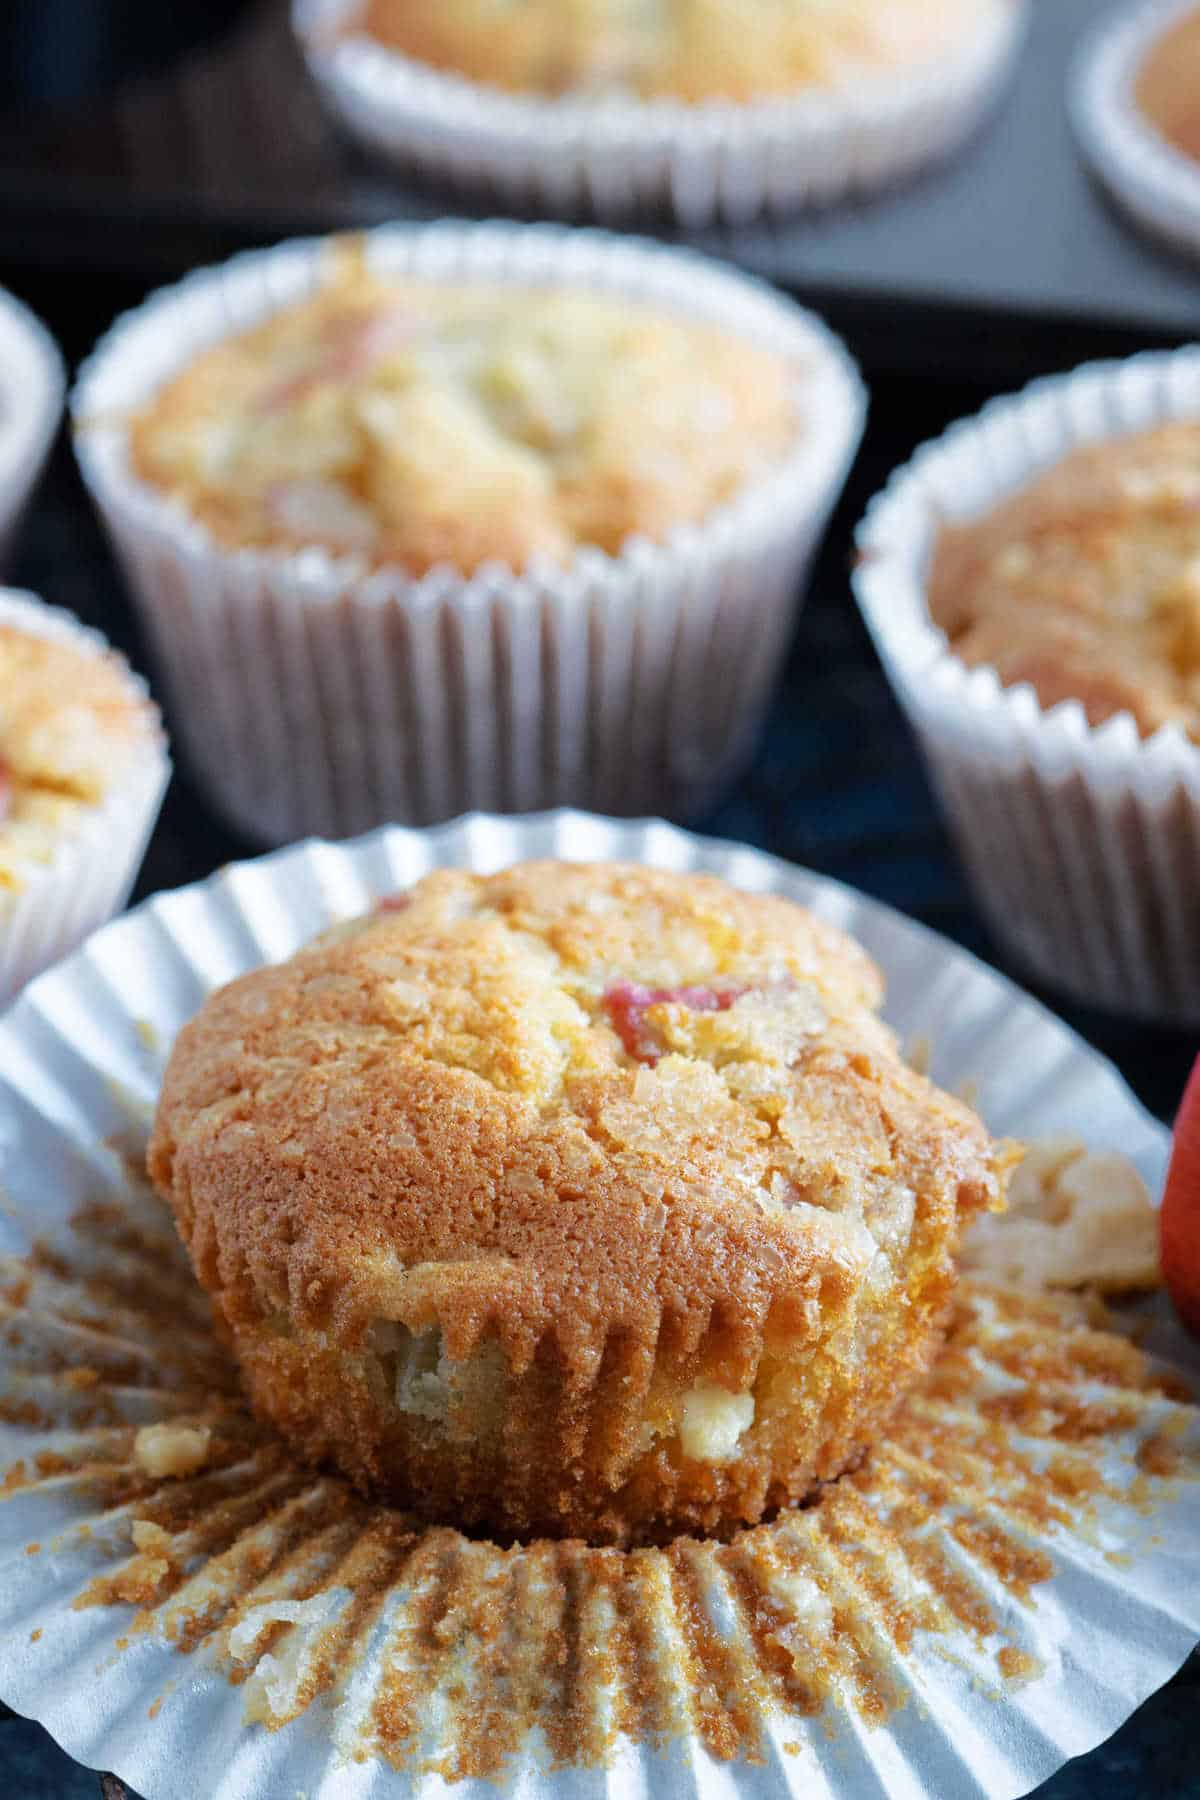 A rhubarb muffin with white chocolate chips.